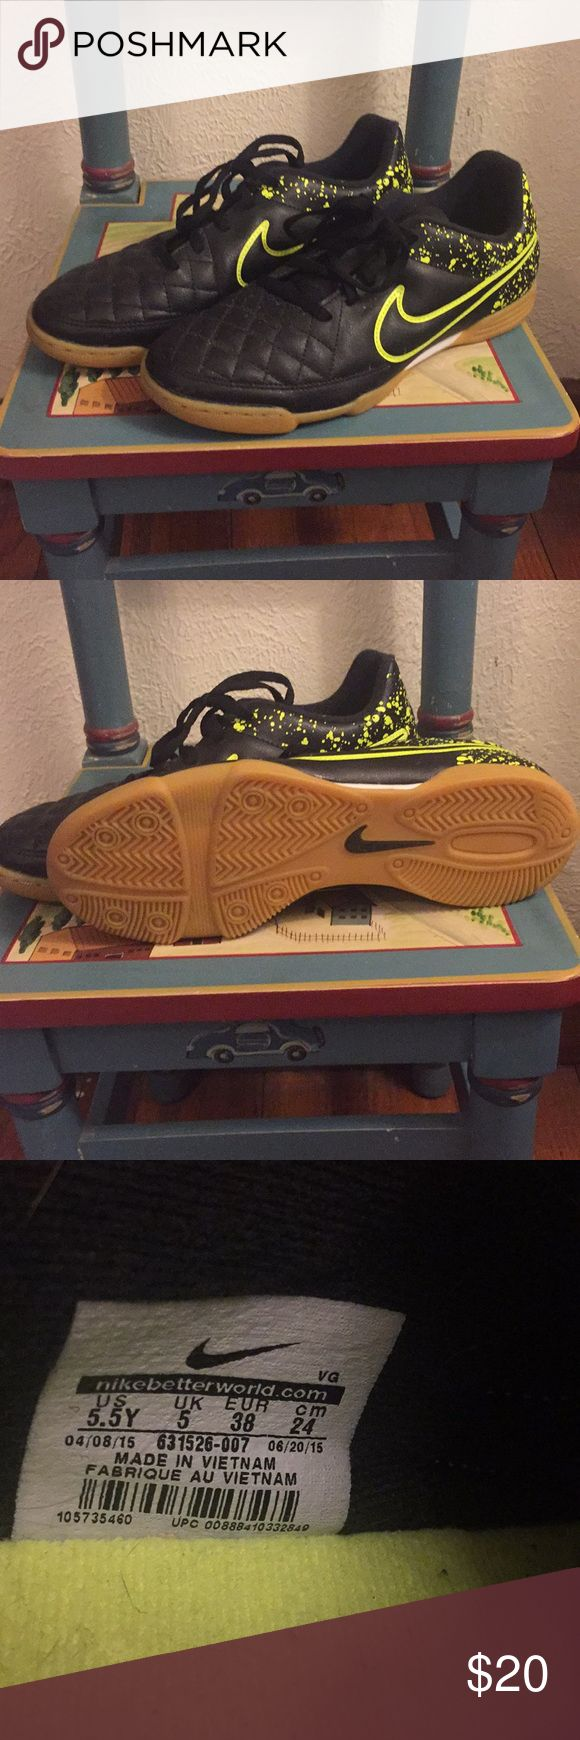 Youth boys size 5.5 Nike indoor soccer shoes Perfect condition indoor soccer shoes. Great for winter conditioning. Worn a few times before he outgrew them! Nike Shoes